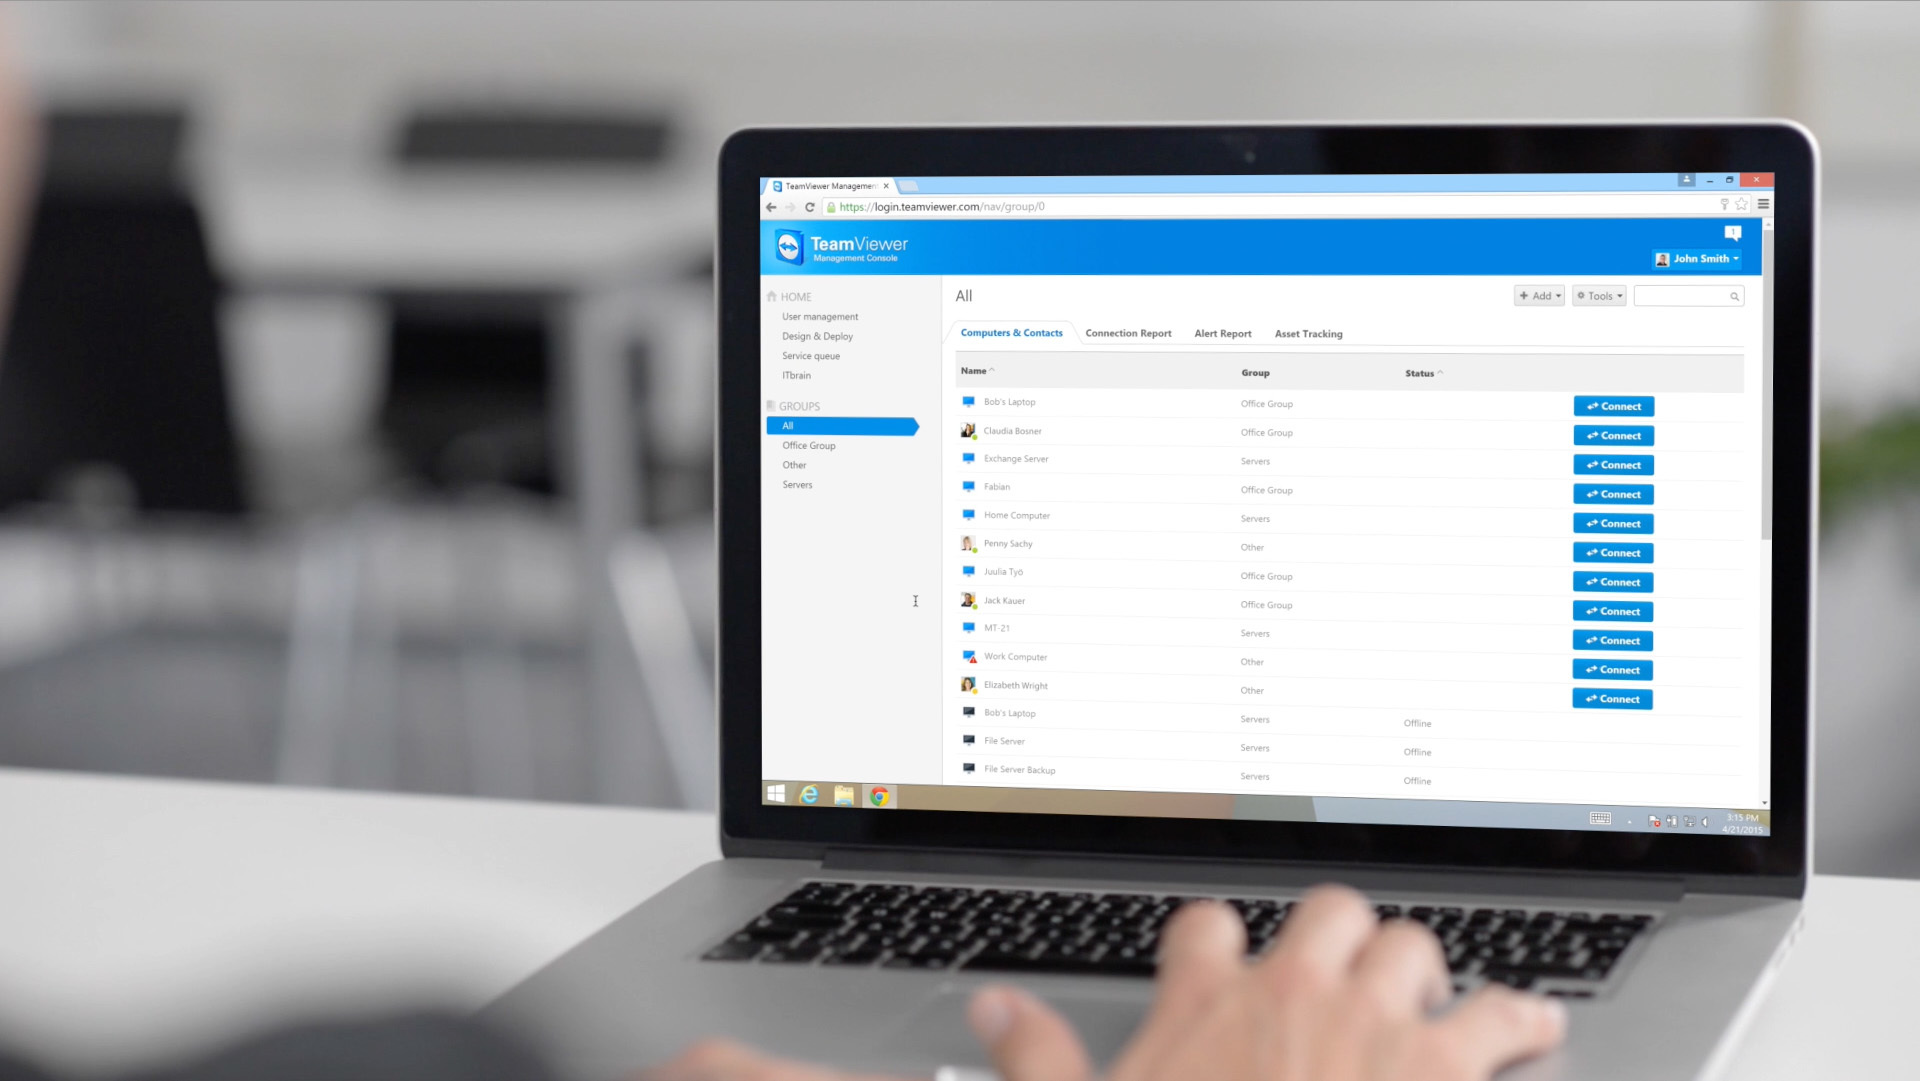 Getting Started with TeamViewer - Management Console